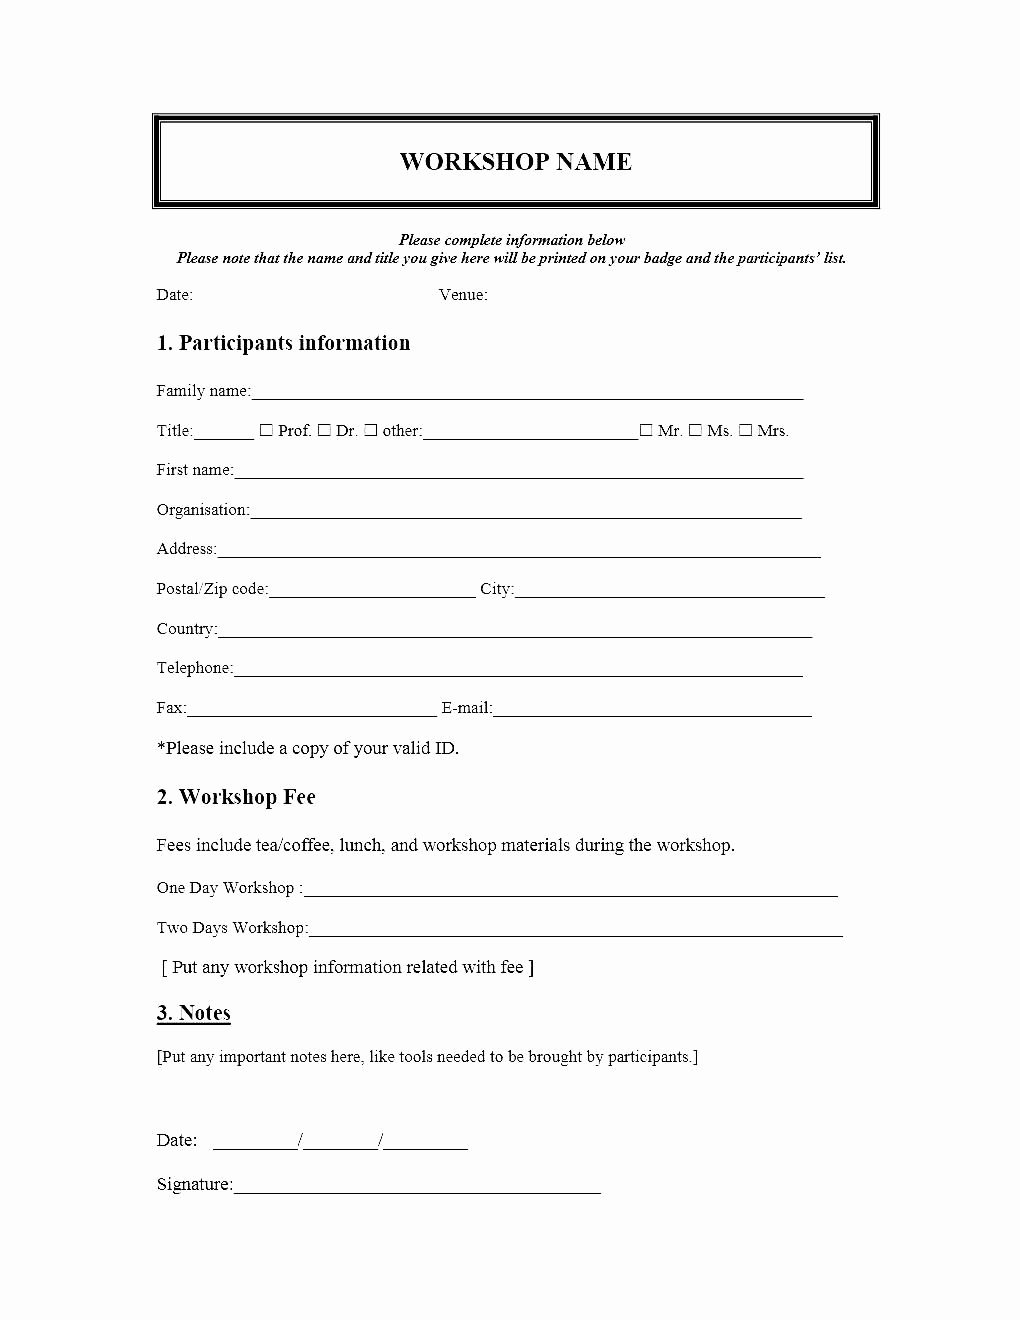 Printable Registration form Template Fresh event Registration form Template Microsoft Word